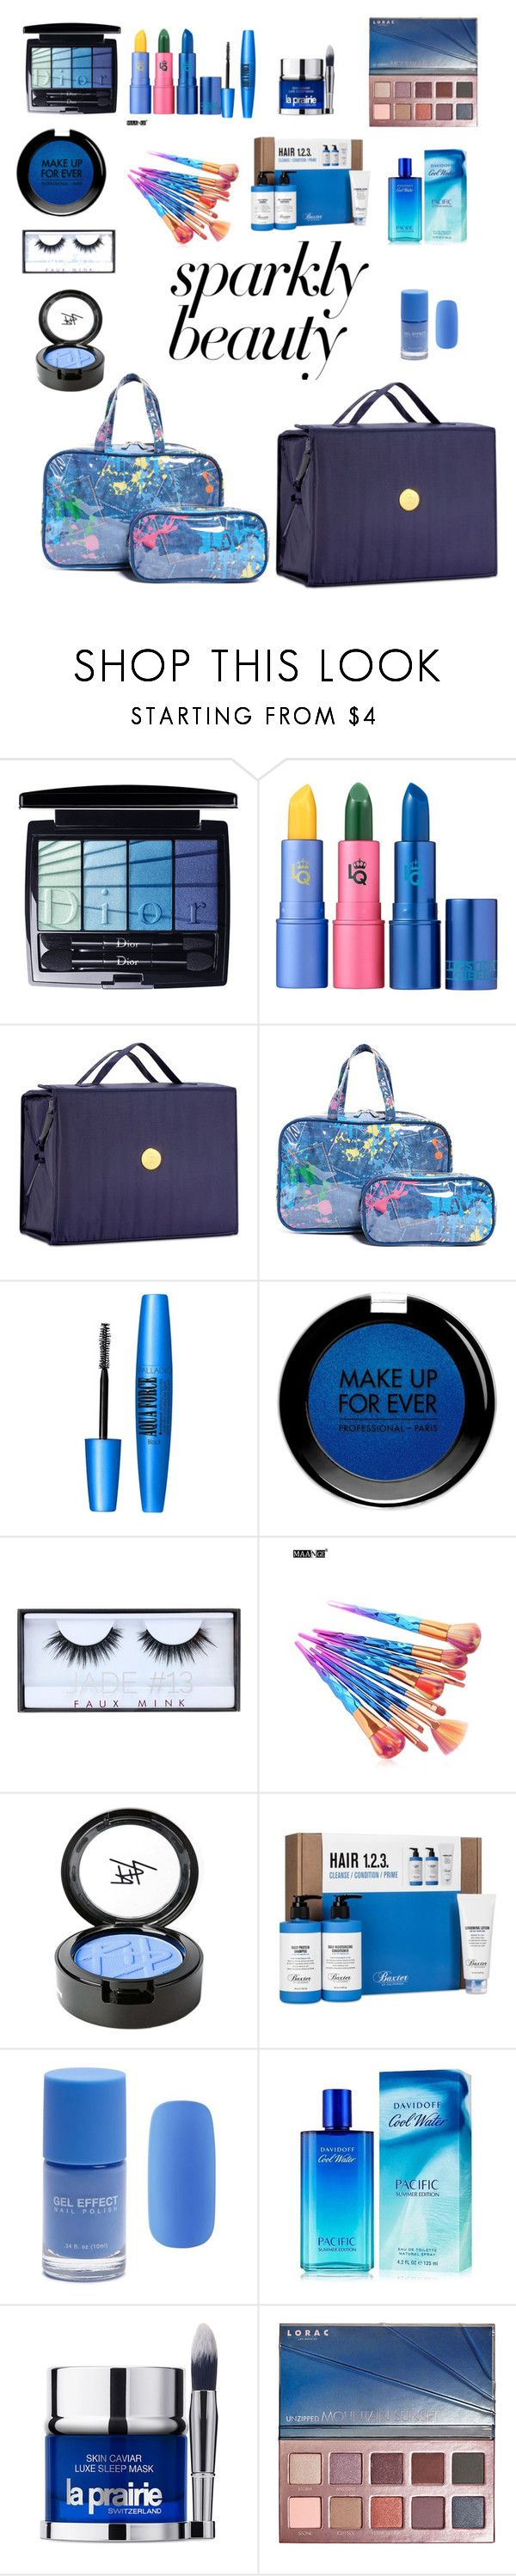 """""""#PolyPresents: Sparkly Beauty"""" by jesica-d-psc ❤ liked on Polyvore featuring beauty, Christian Dior, Lipstick Queen, Joy Mangano, Forever 21, MAKE UP FOR EVER, Huda Beauty, Beauty Is Life, Baxter of California and Davidoff"""